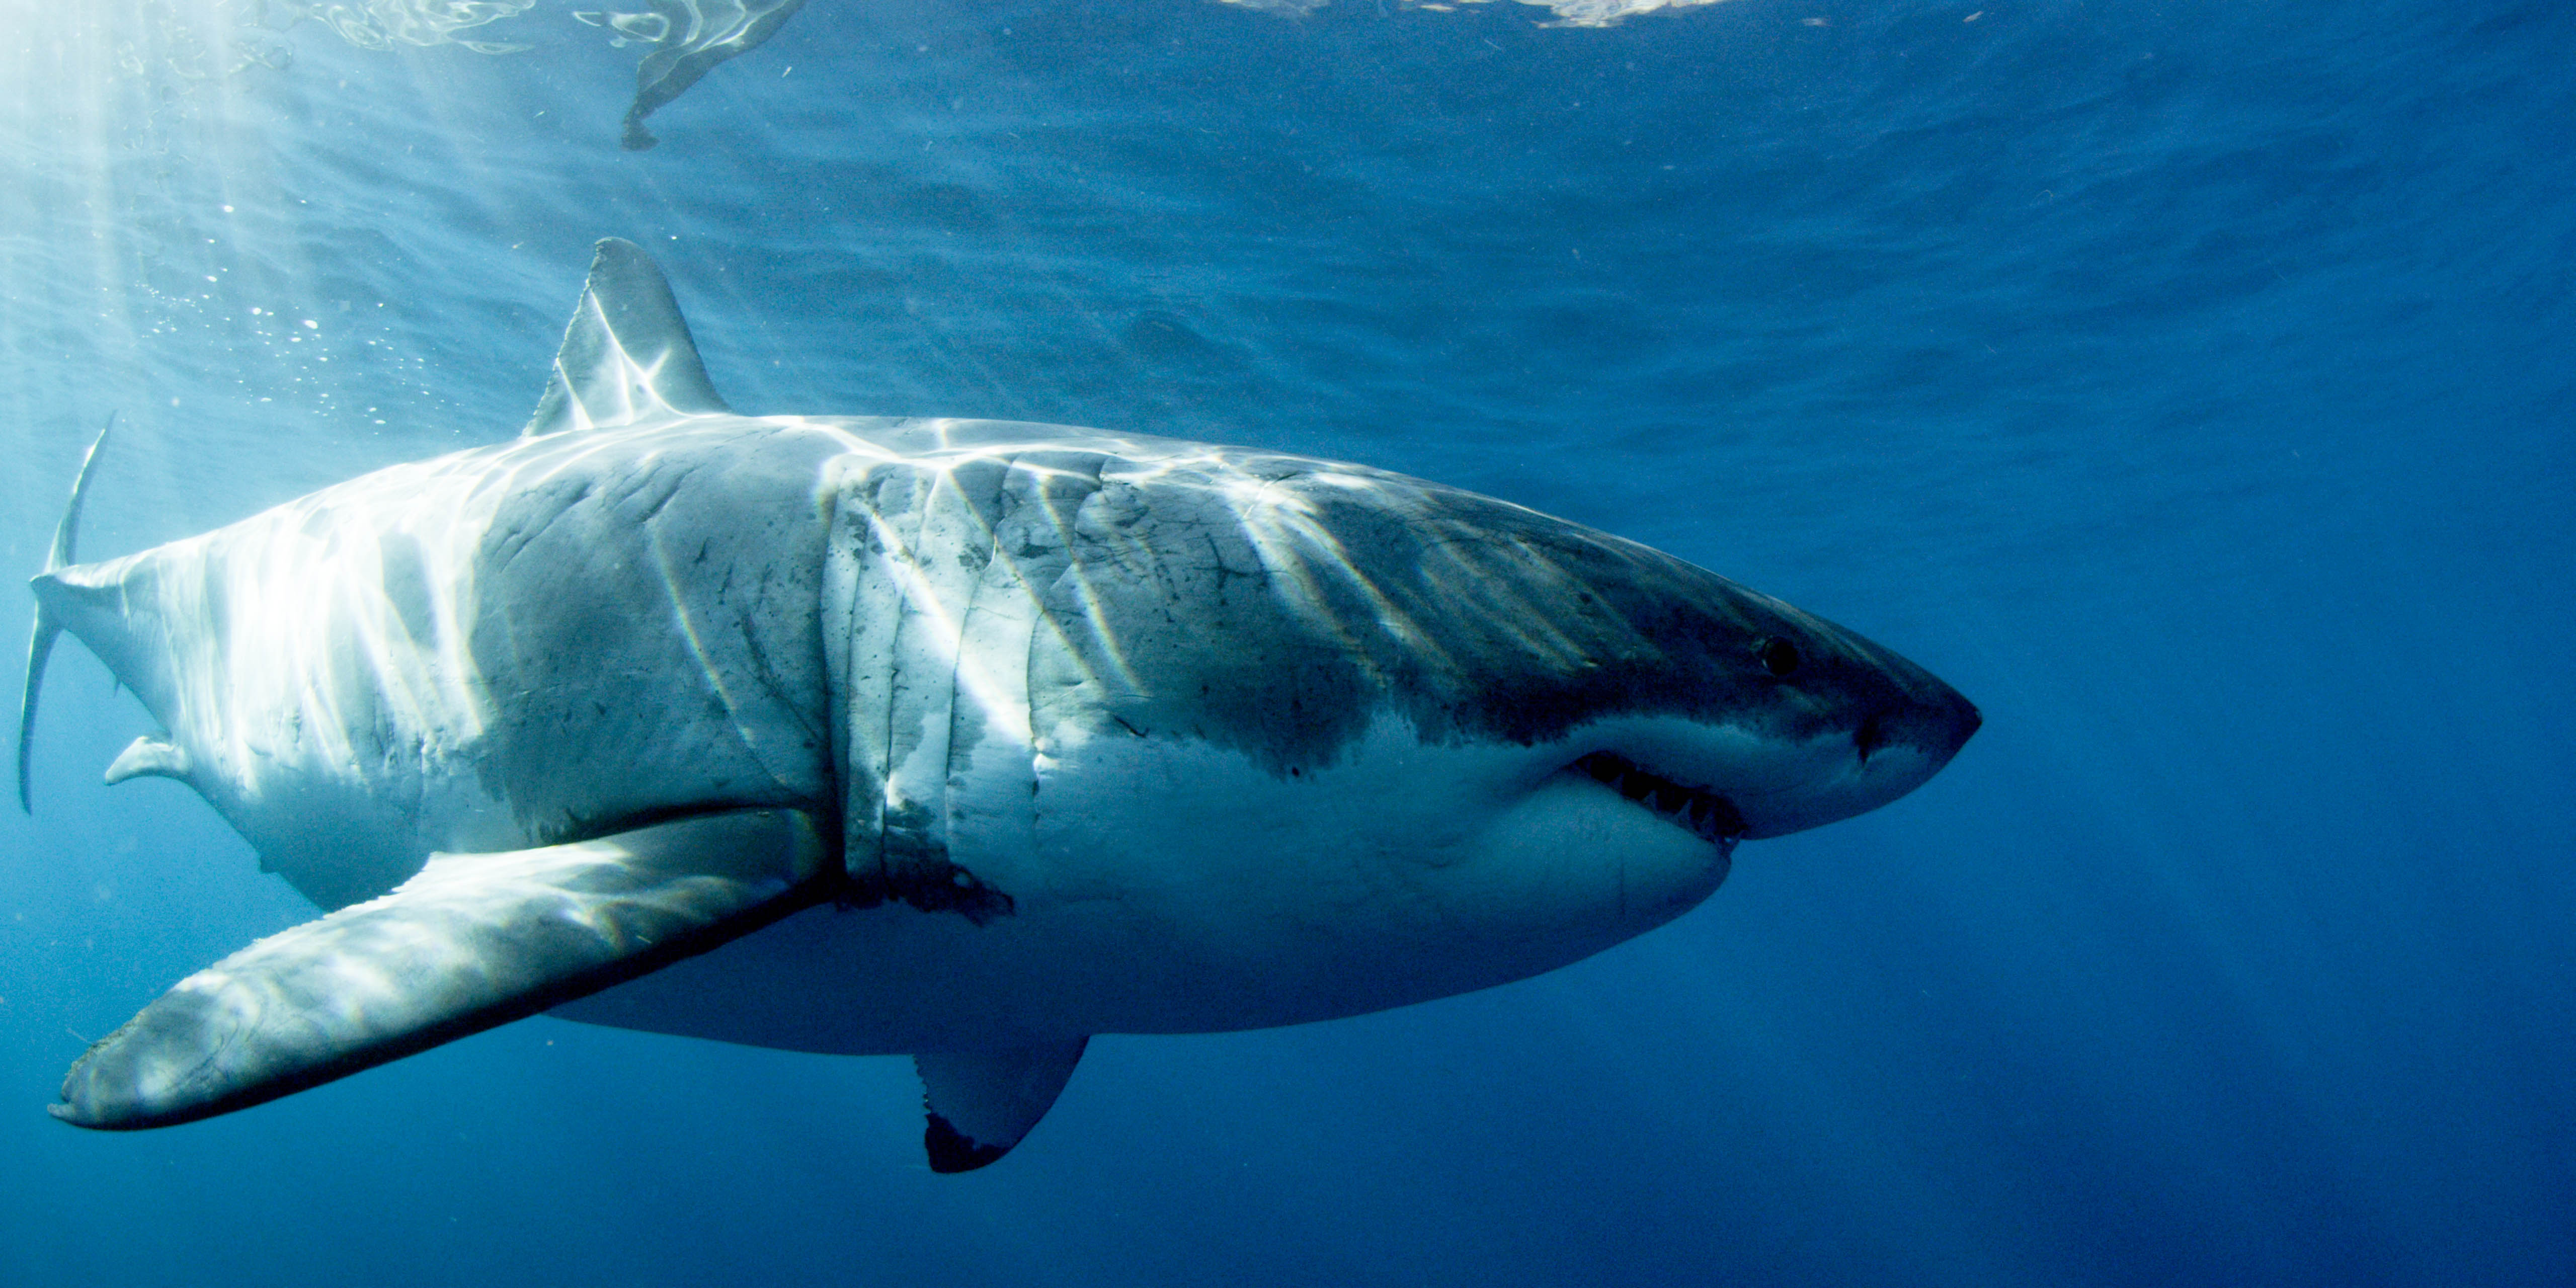 Shark Week 2015 Commercial Released; Watch First Promo Video For July 5 Premiere